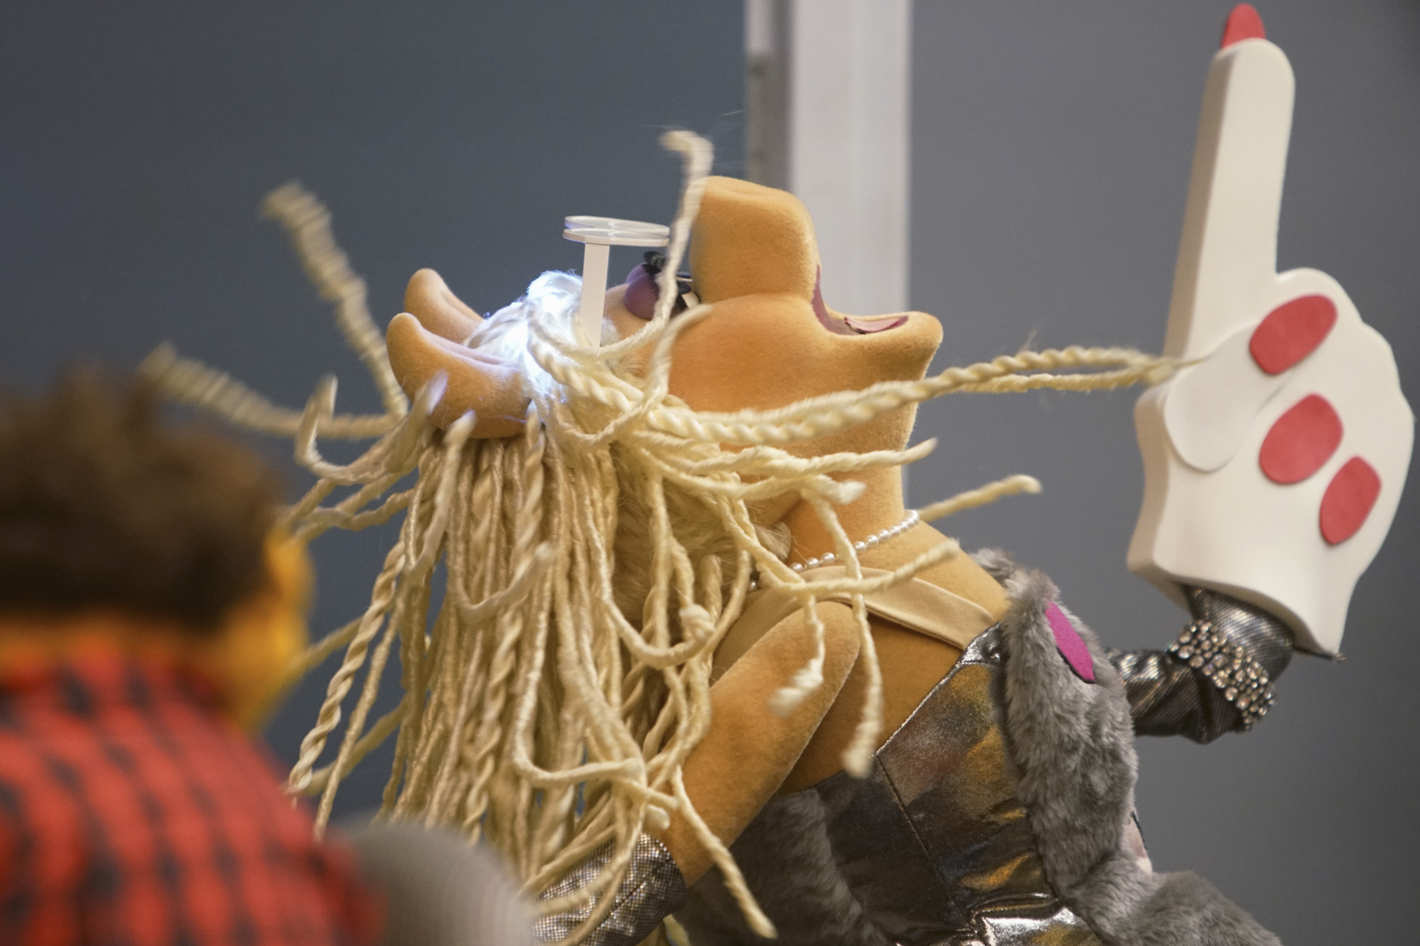 The Muppets Will Brave Manhattan's Crushing Holiday Crowds